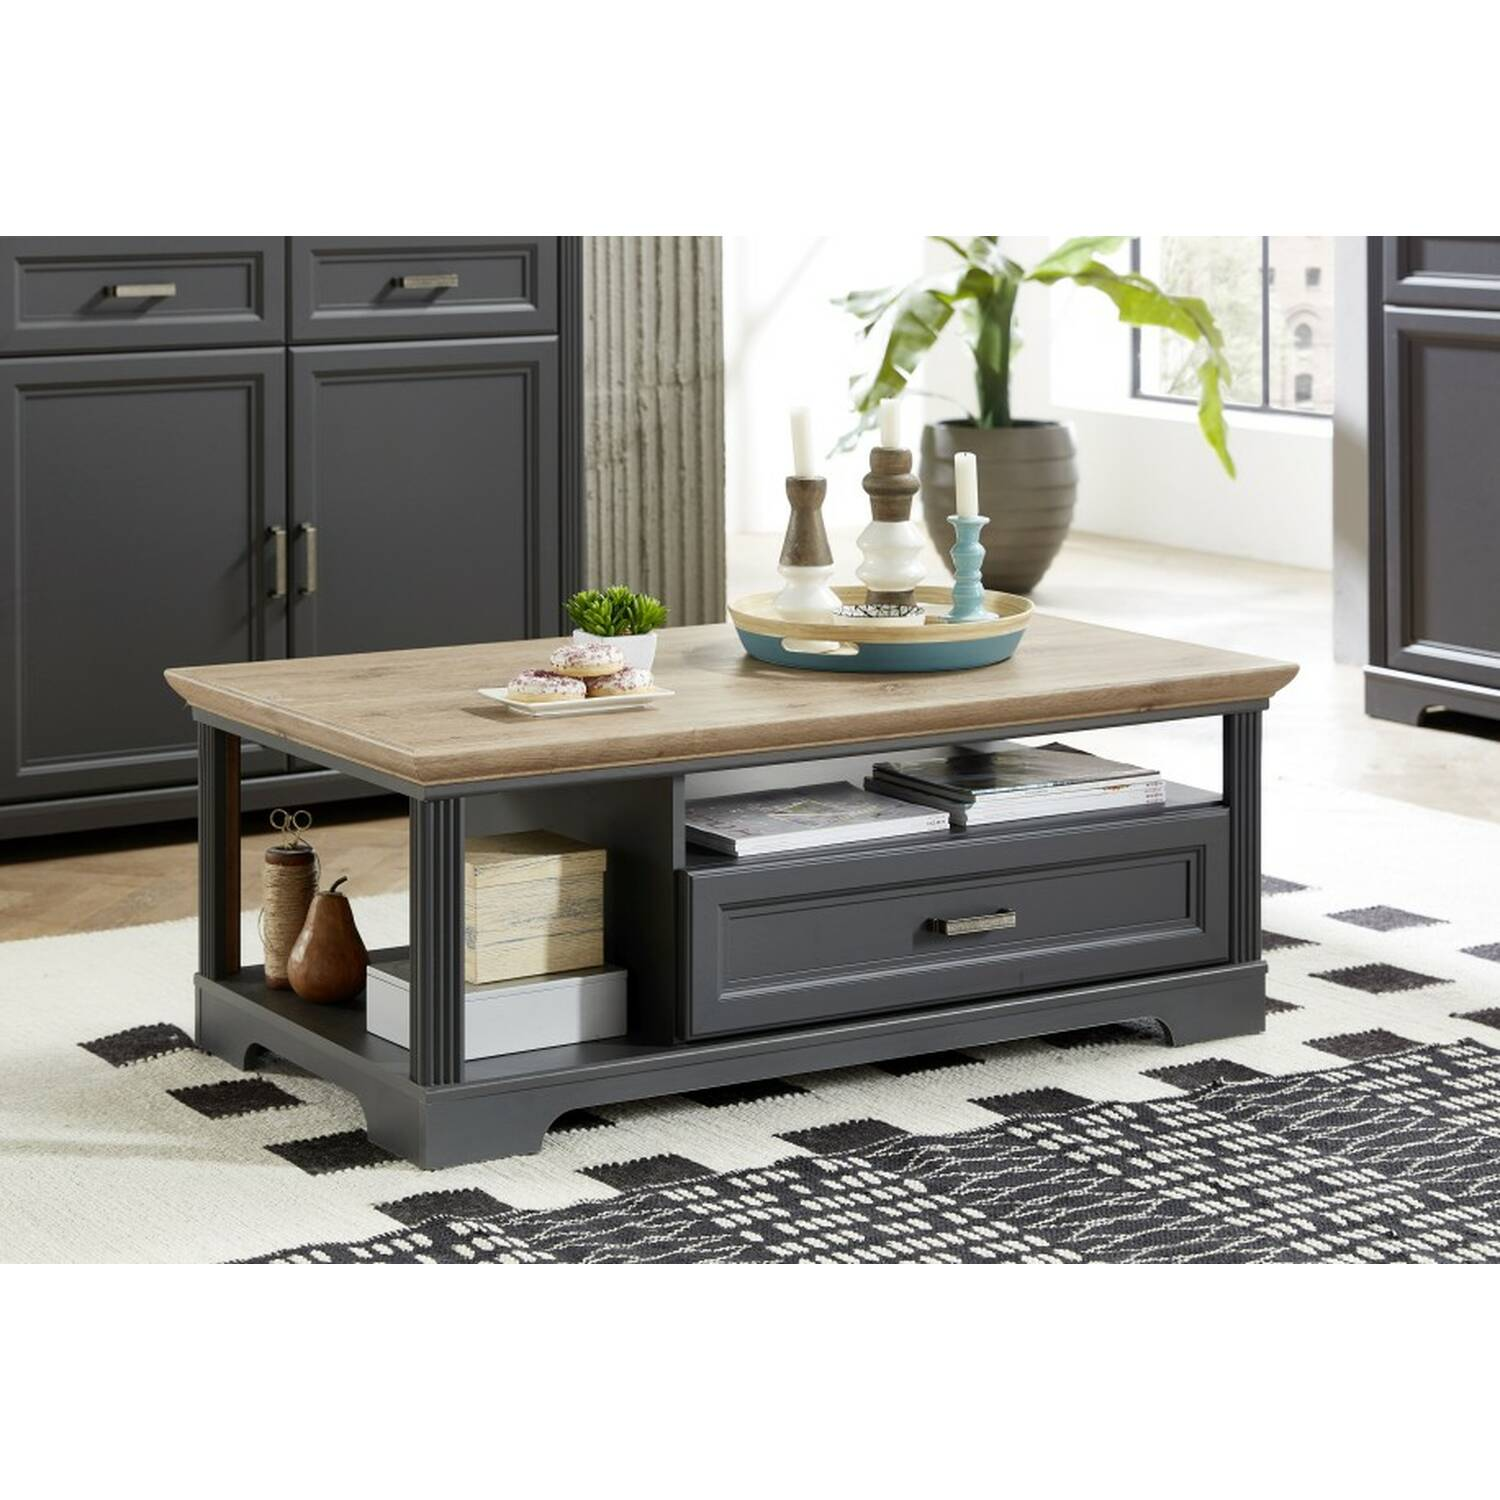 - Coffee Table In Country House Style Decor Graphite JÜLICH-36 With Top